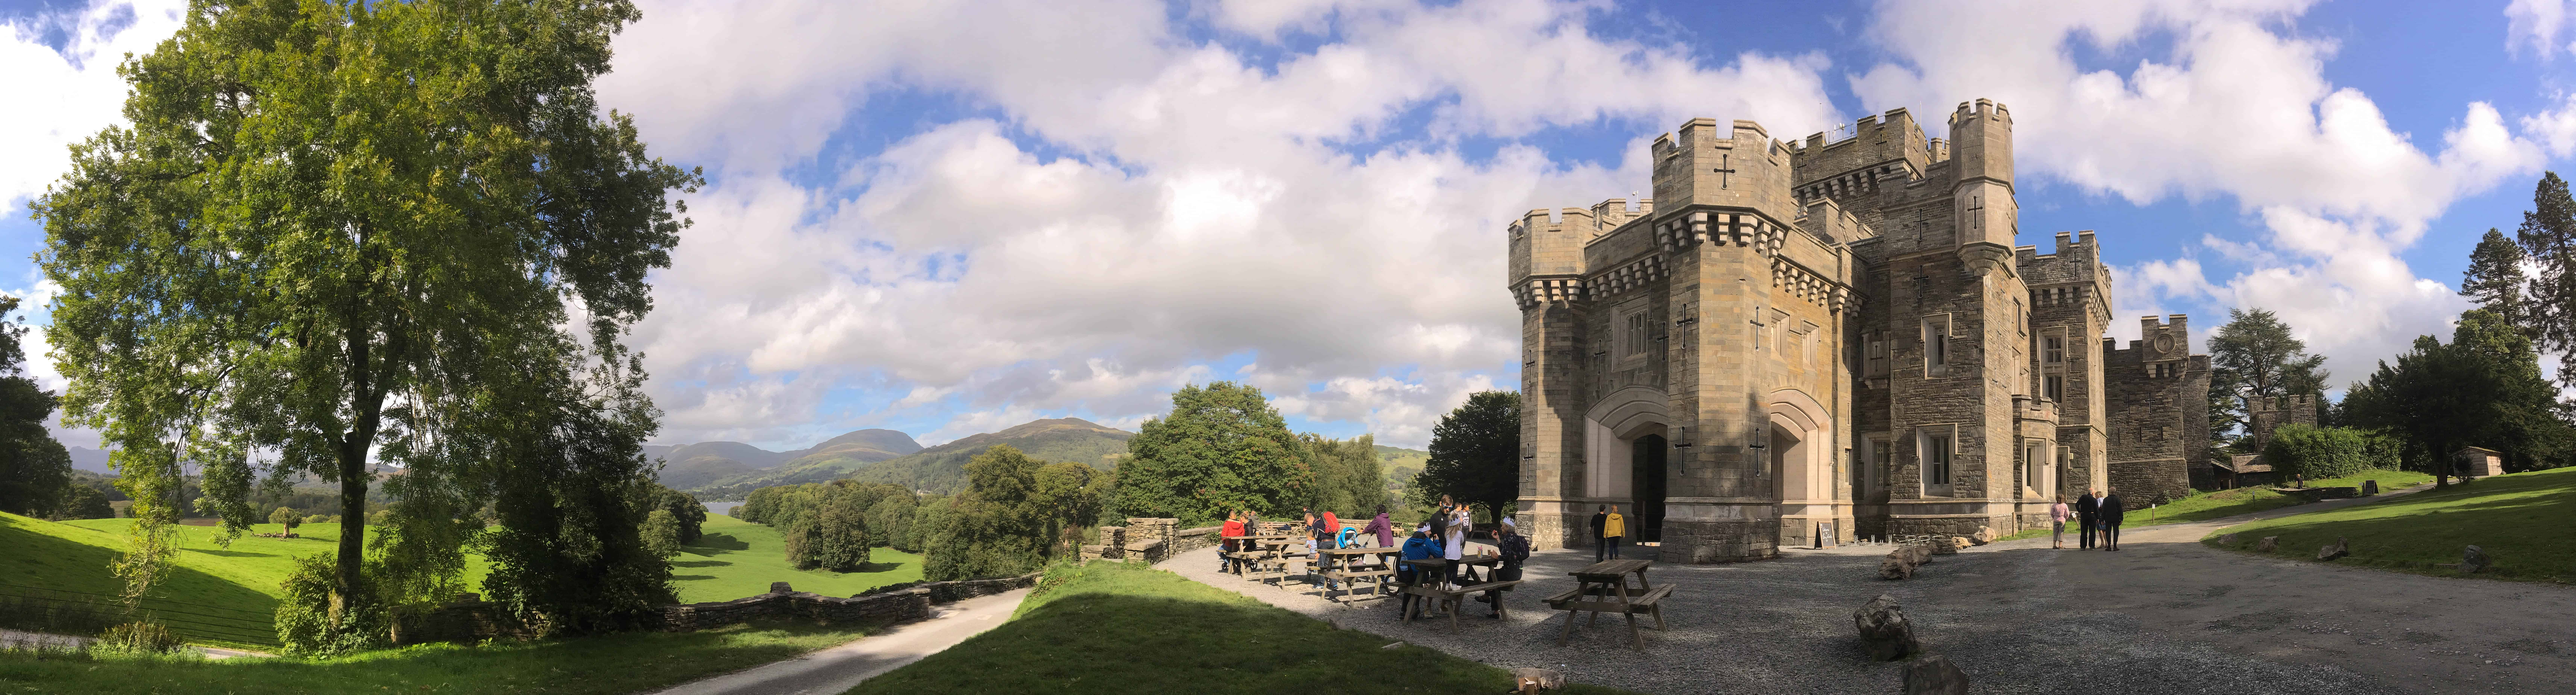 panoramic view of wray castle, ambleside, lake district